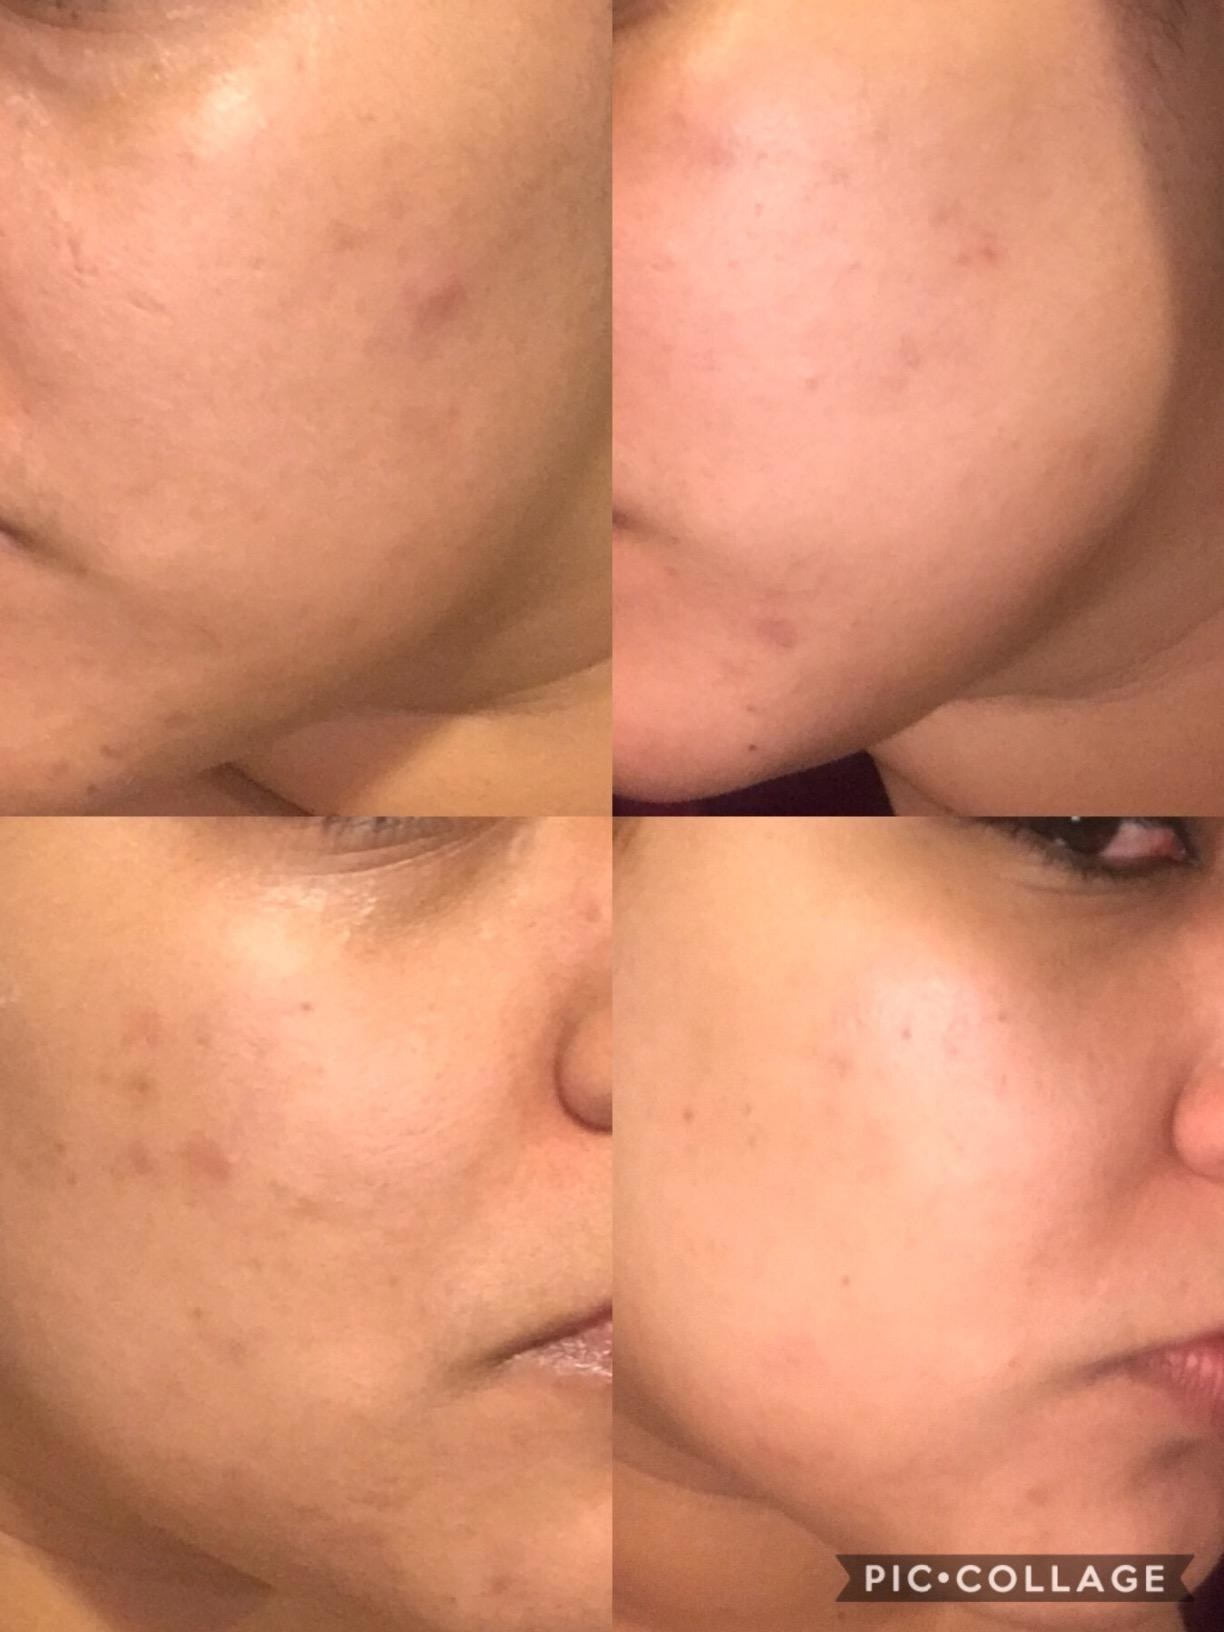 before and after showing the vitamin c helped significantly fade reviewer's hyperpigmentation on their cheek